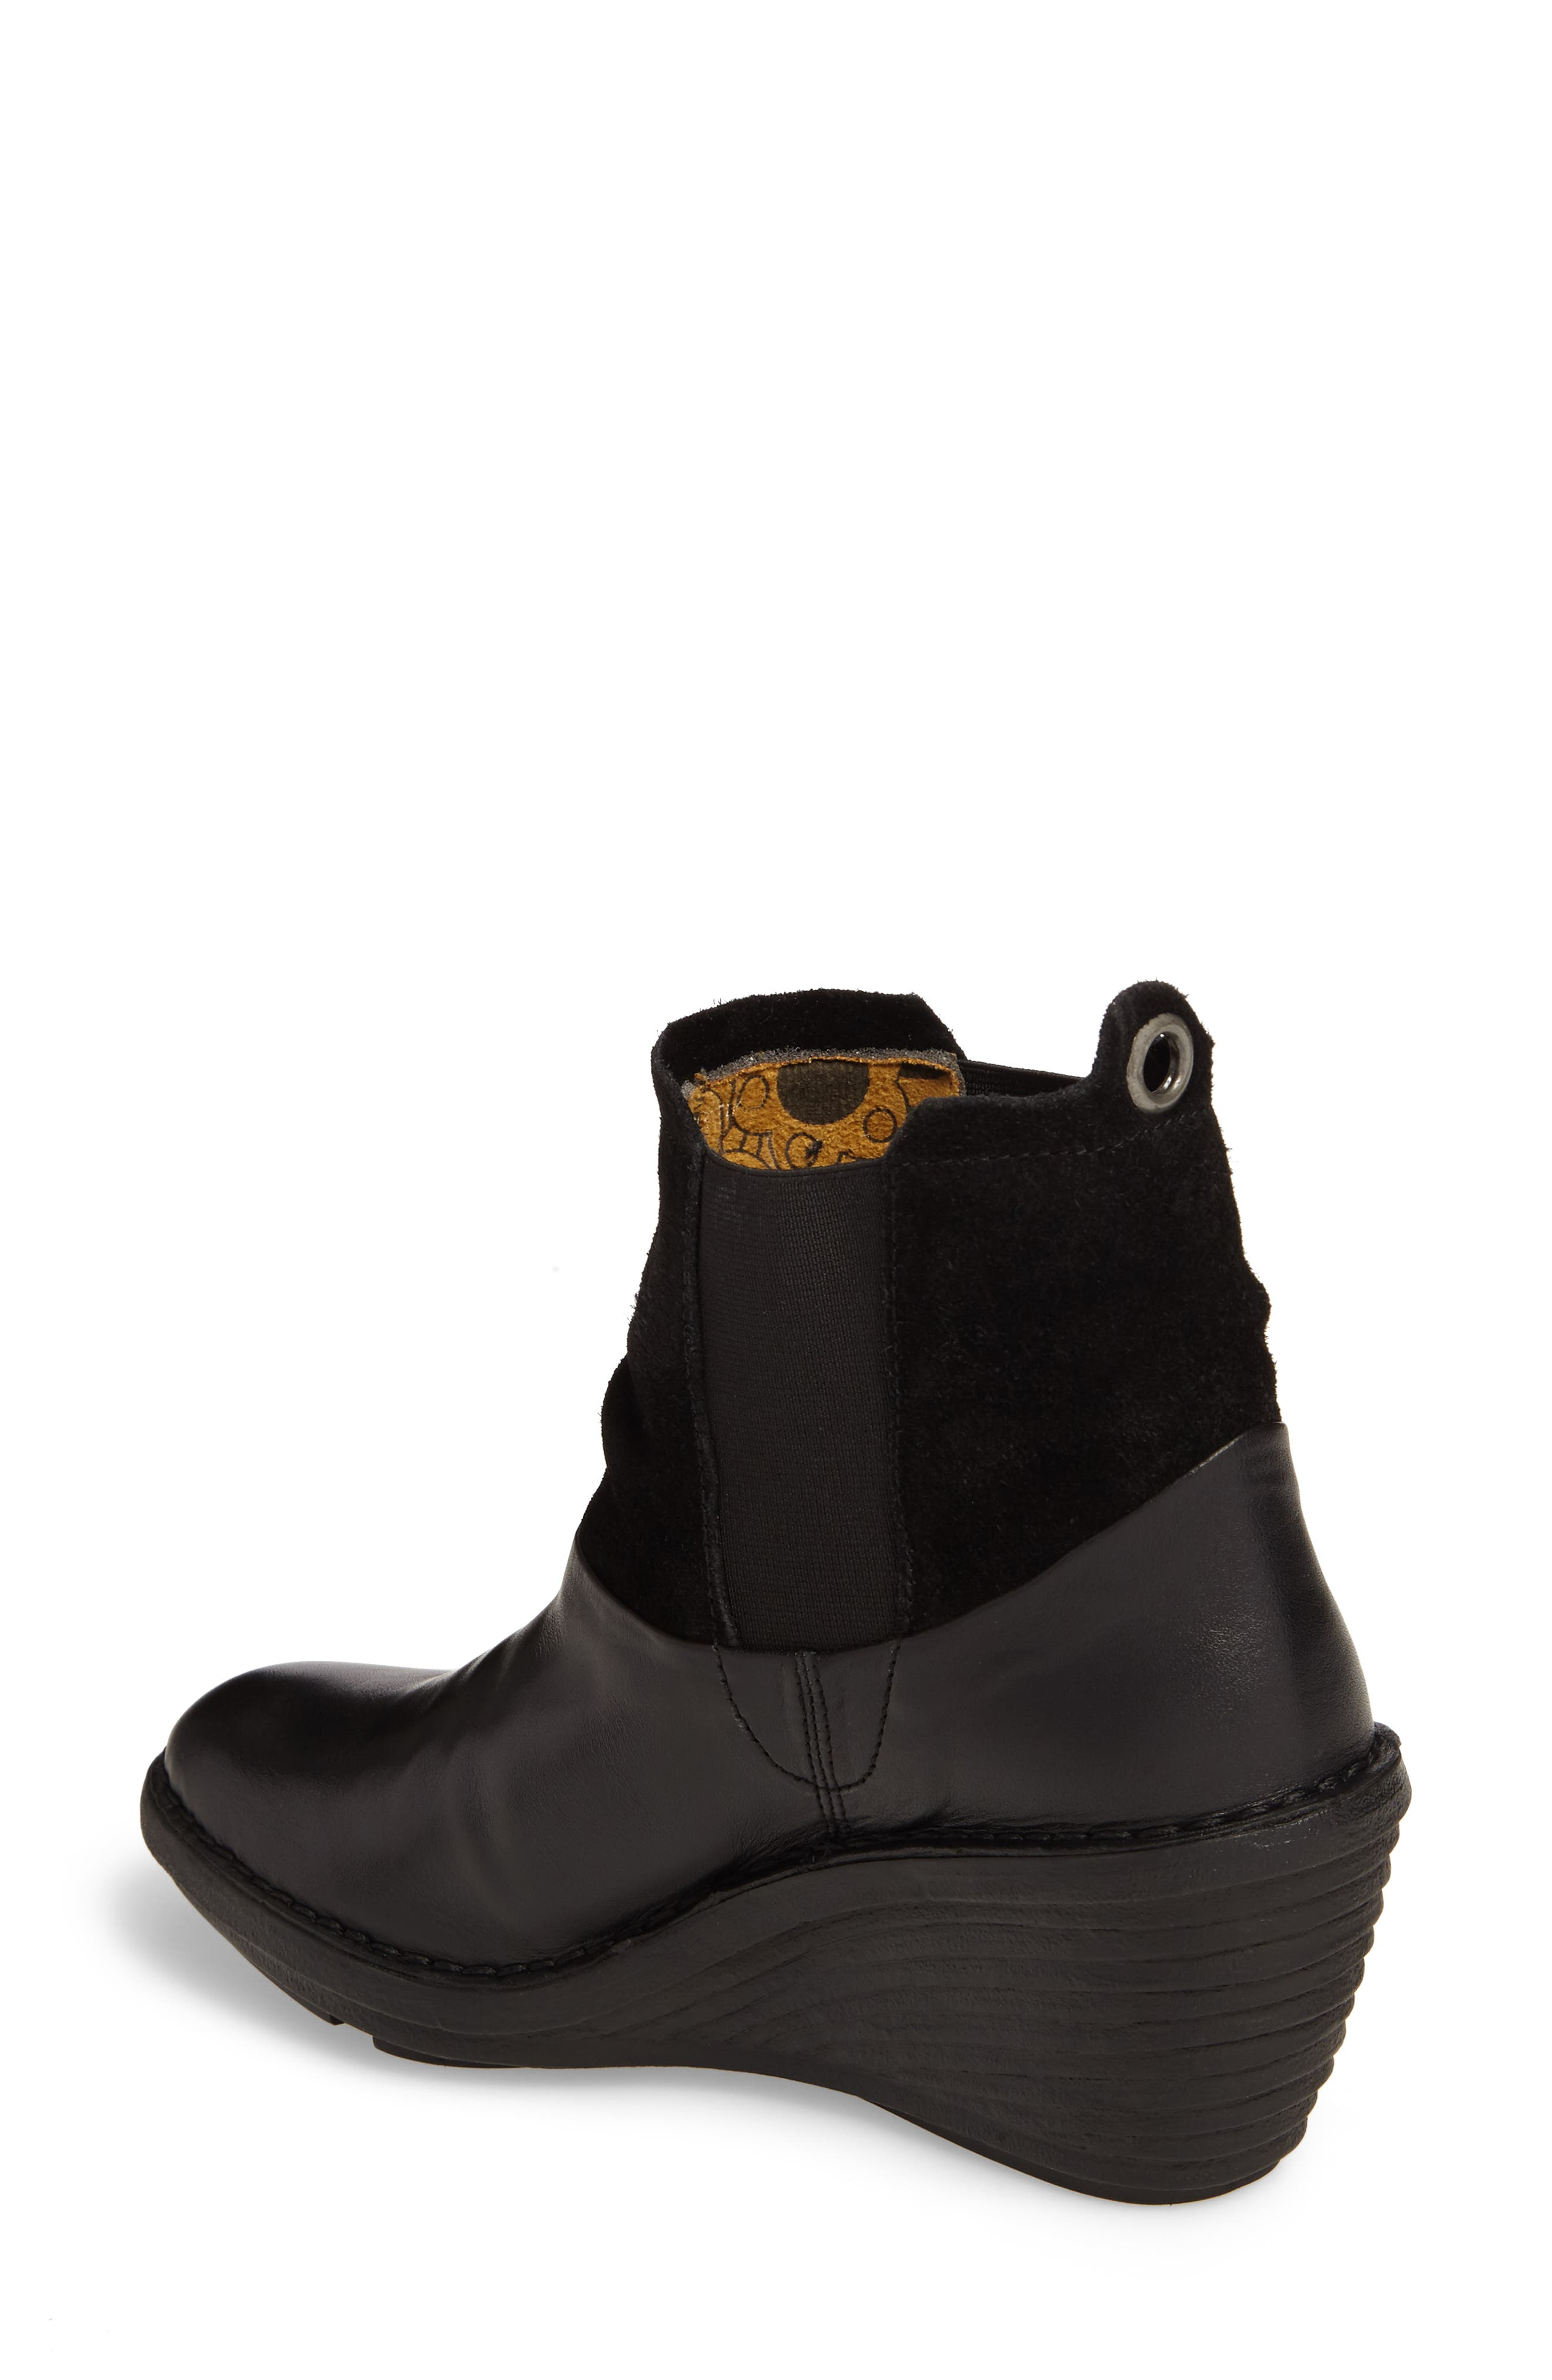 Sula Wedge Bootie,                             Alternate thumbnail 2, color,                             001